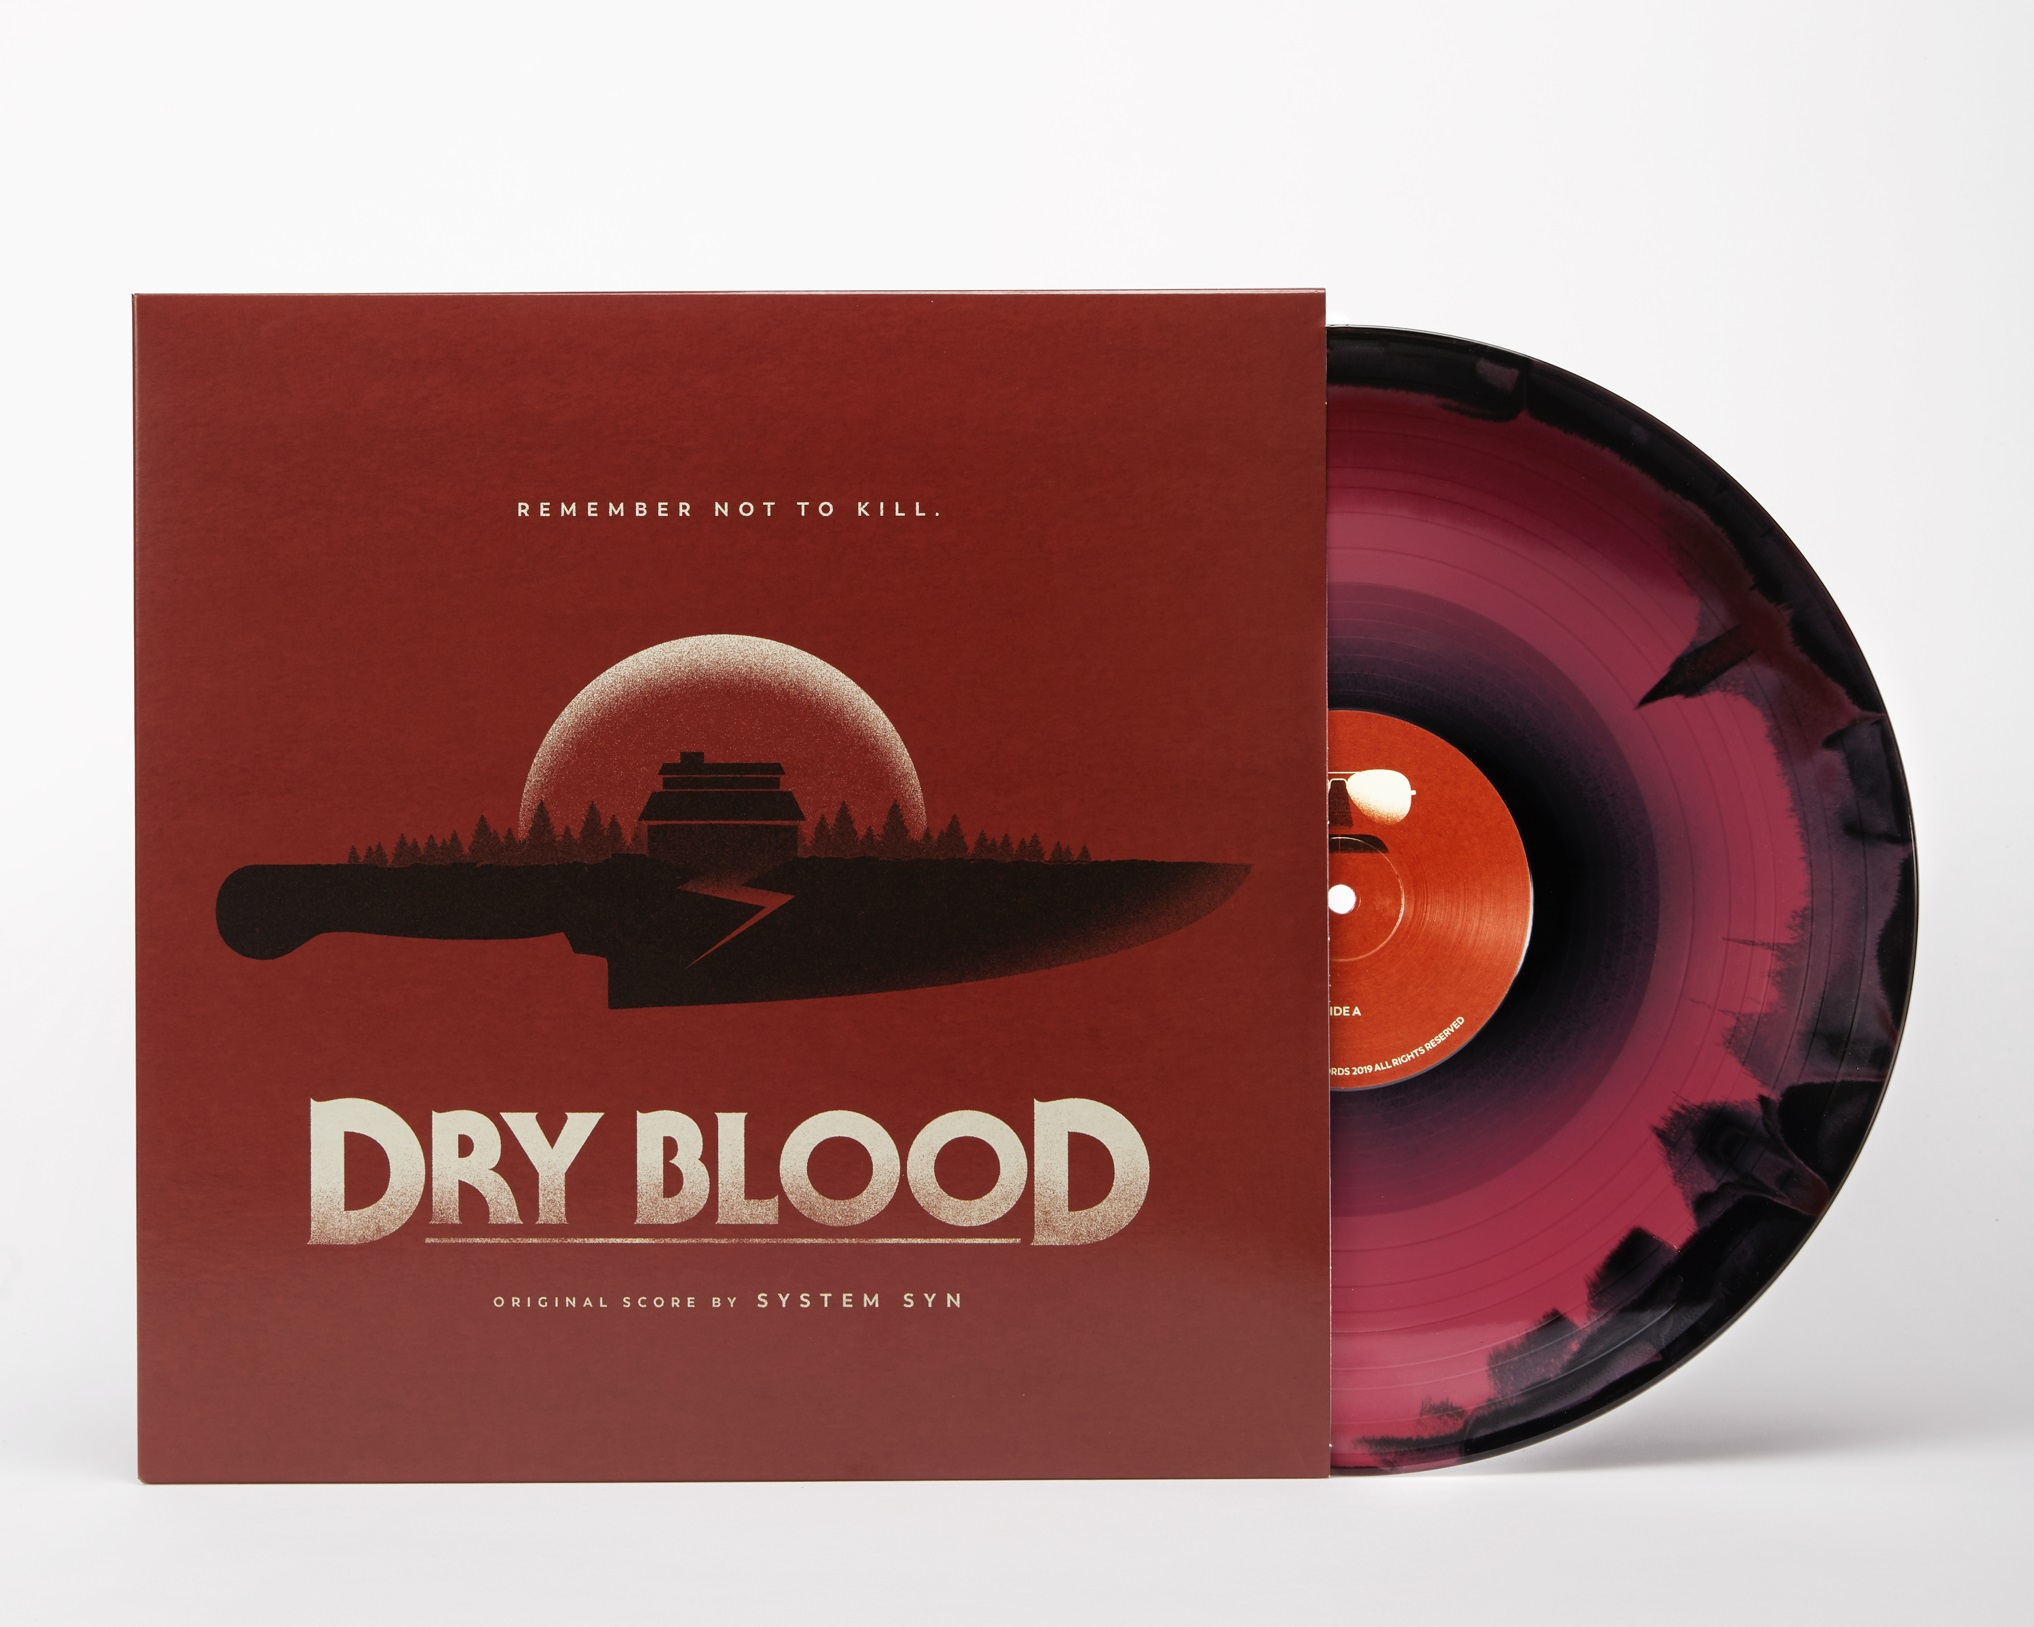 System Syn - Dry Blood Original Motion Picture Soundtrack - Vinyl —  burningwitchesrecords